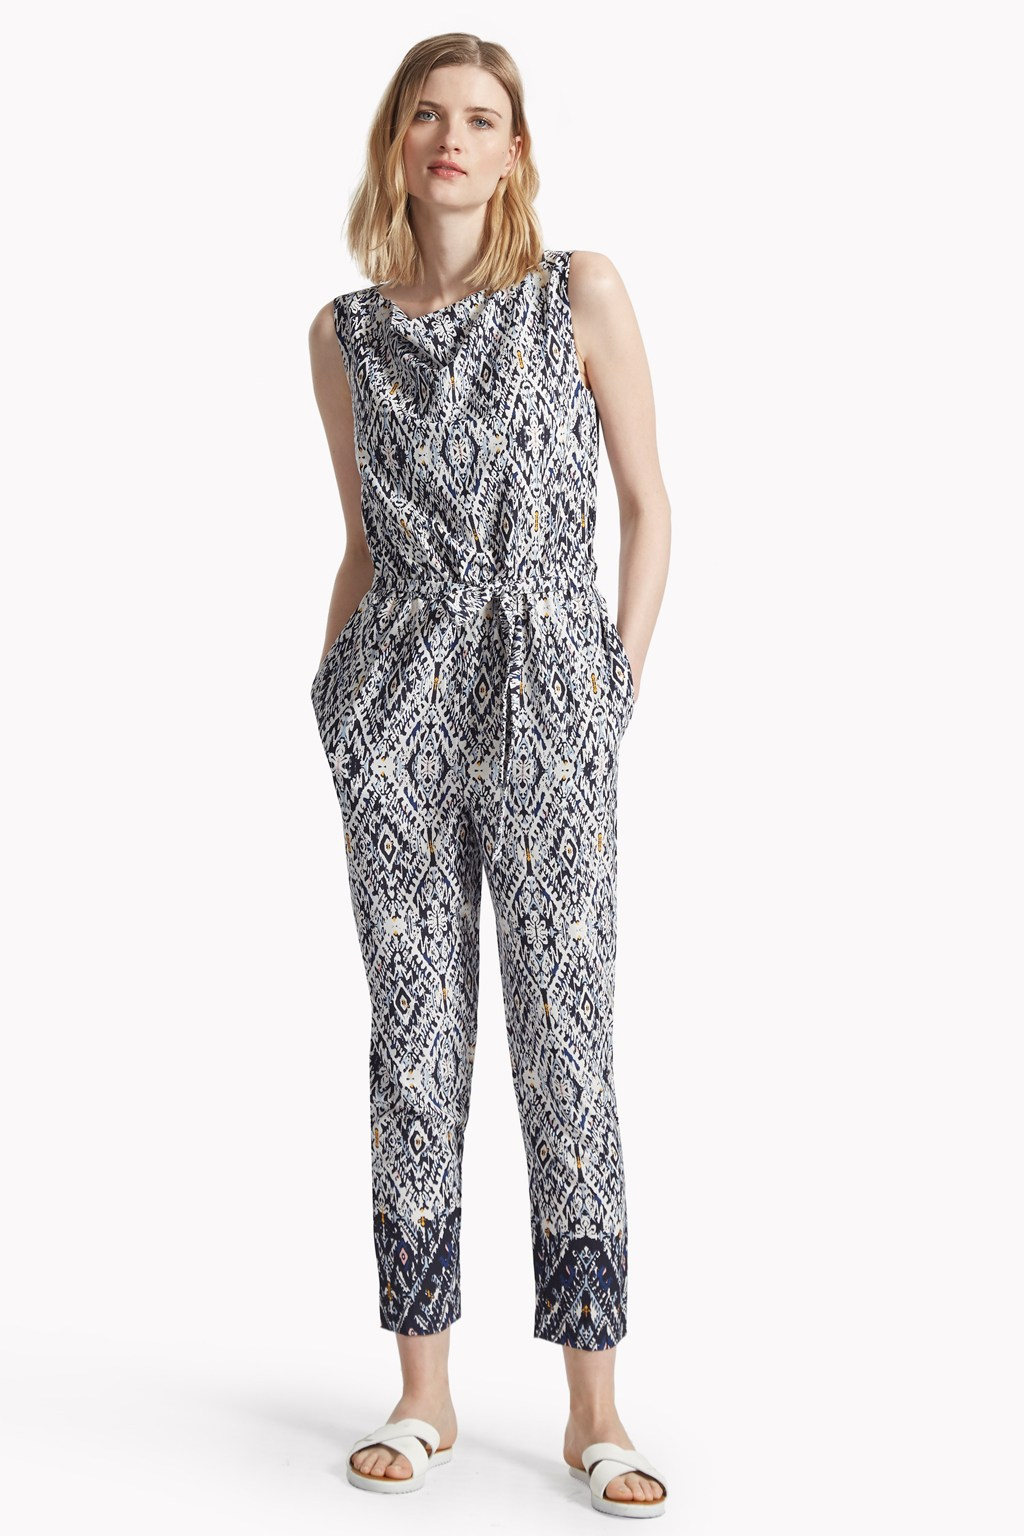 Shop the latest in one-piece jumpsuits from Vince Camuto: Find wide-leg jumpsuits, rompers, party jumpsuits and more! Free shipping on all orders! Vince Camuto.